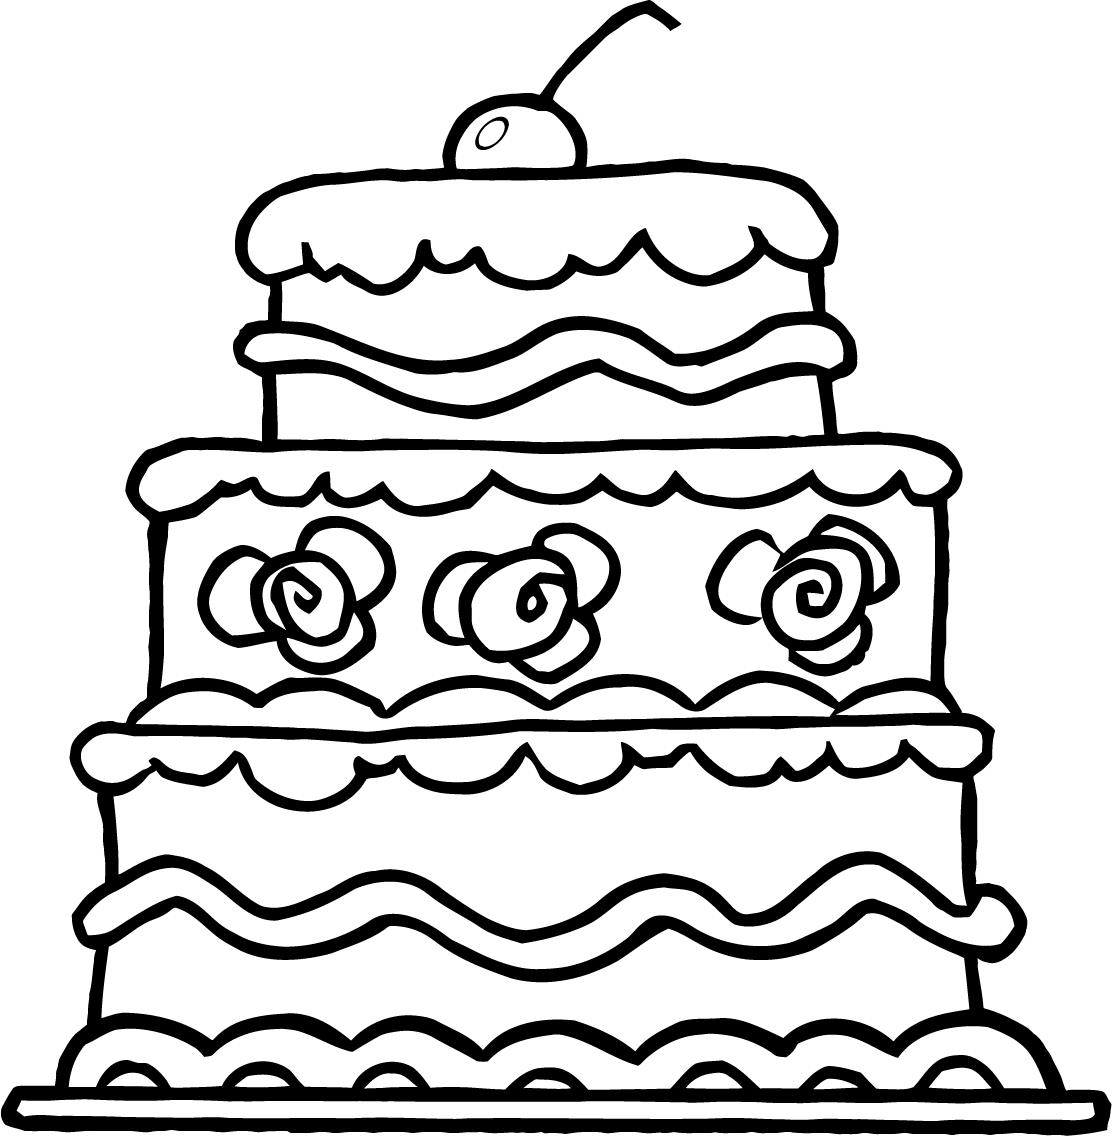 cake coloring pages to print cake coloring pages to download and print for free to coloring pages cake print